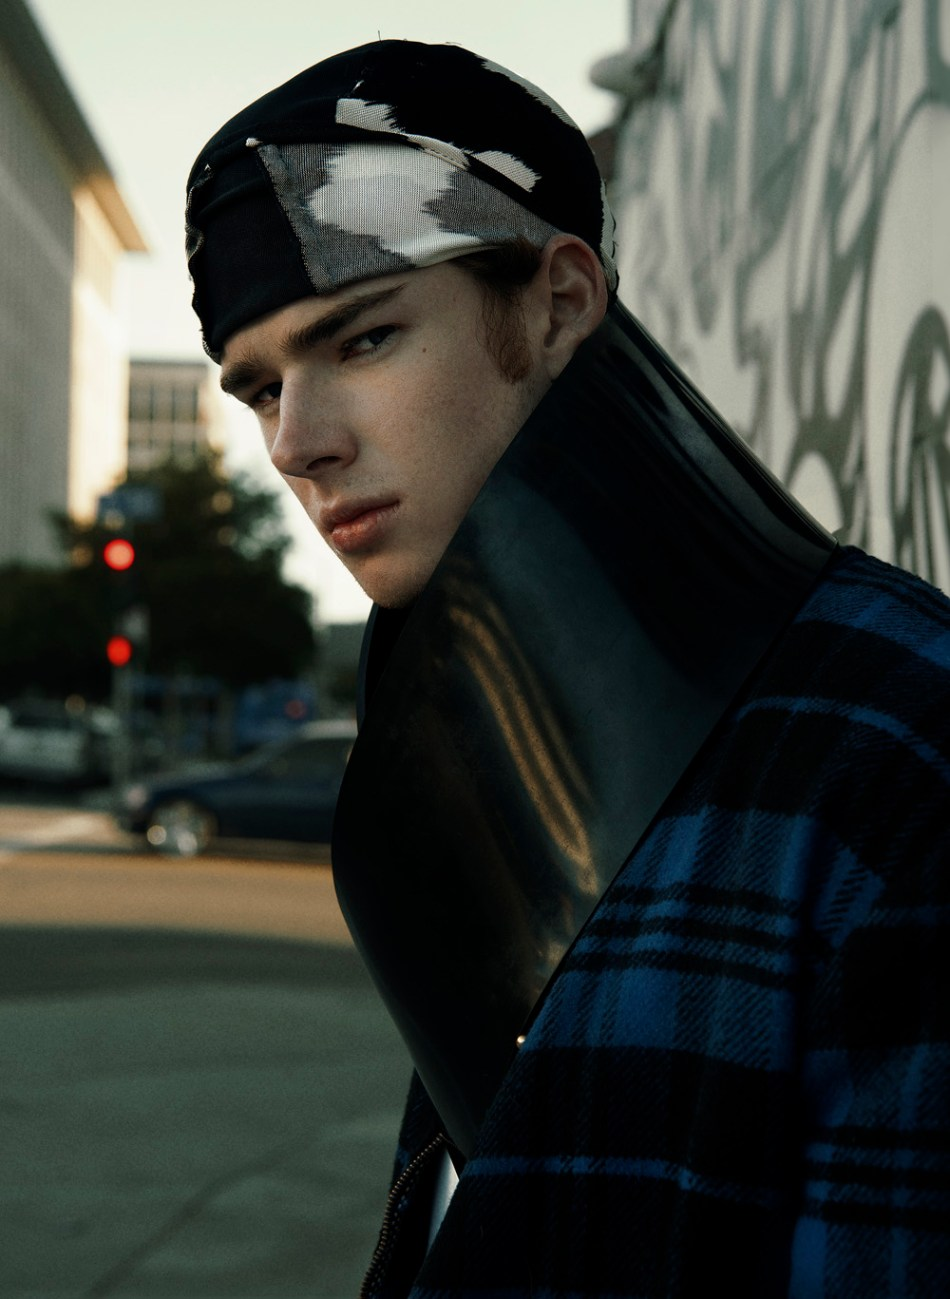 """King of Gangs"" fashion editorial captured by talented Jvdas Berra starring by Model Sean Grace from TWO Model Management, fashion styling by Adolfo Sánchez and grooming by Chanel Bohn."